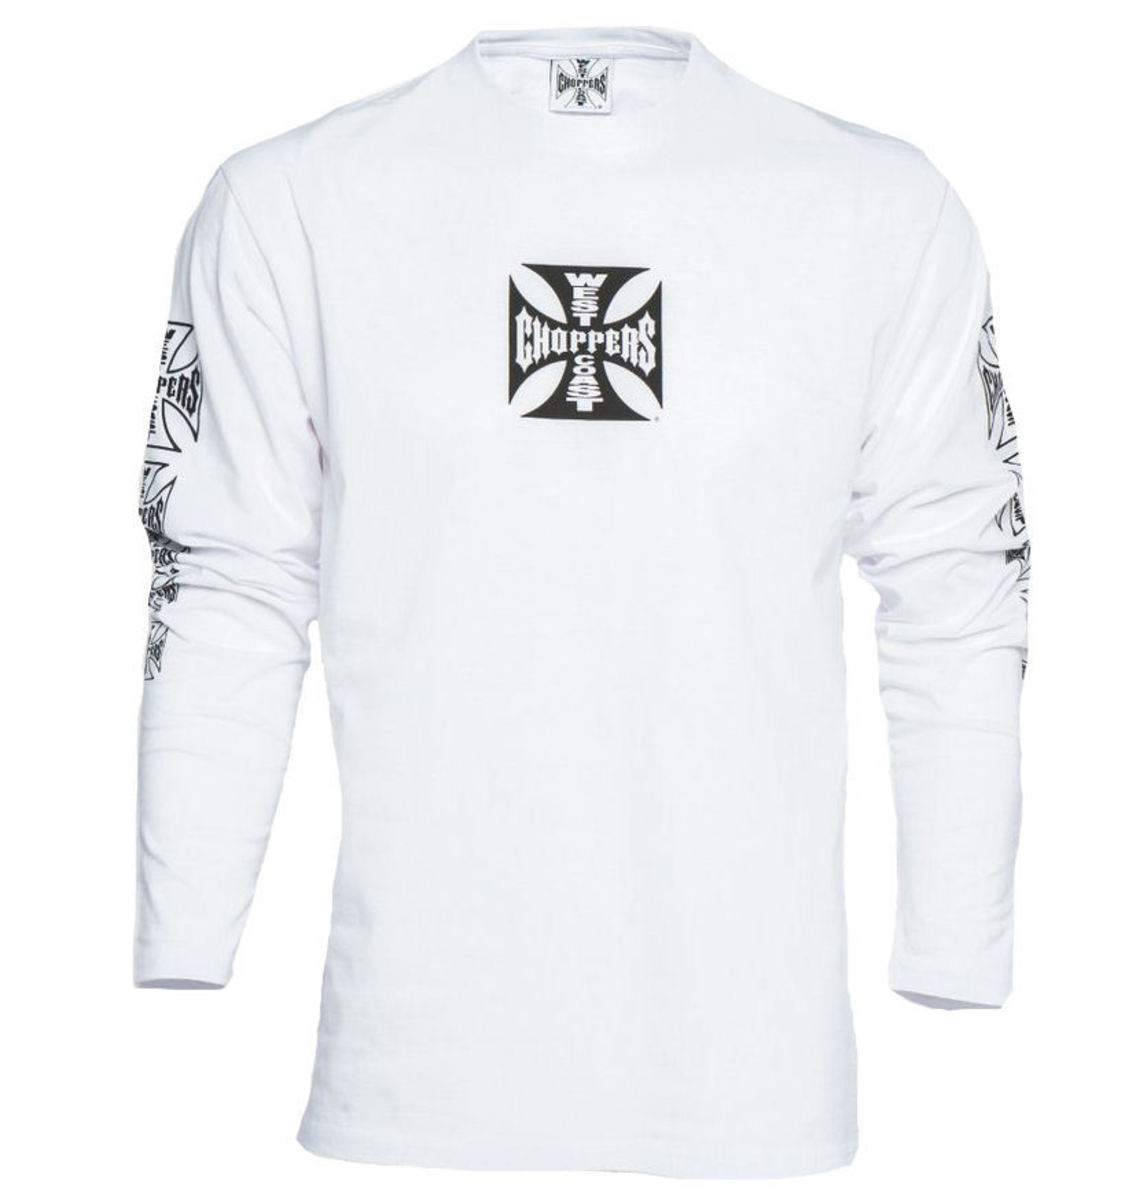 West Coast Choppers WCC OG CROSS LONG SLEEVE černá bílá